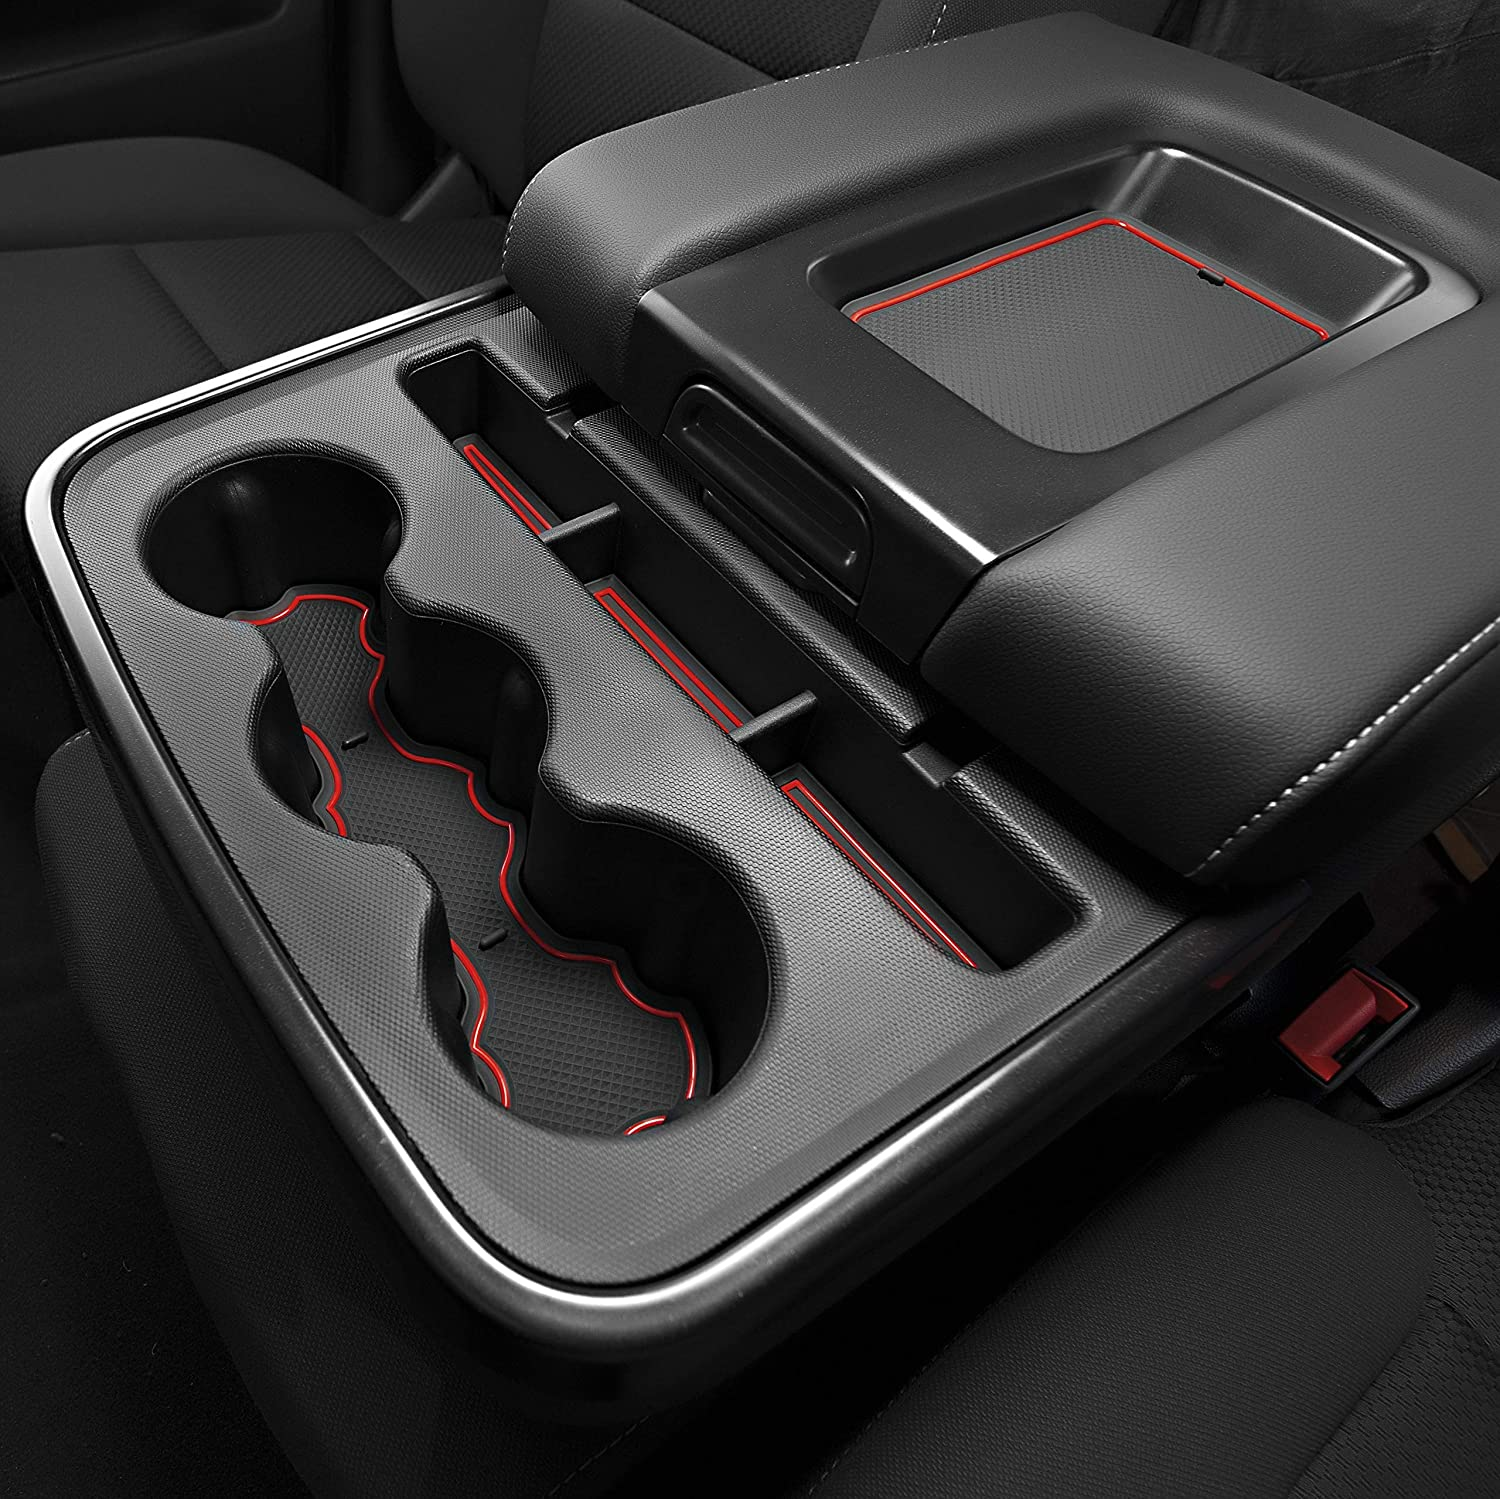 and Door Pocket Inserts 31-pc Set Solid Black Premium Cup Holder Console Crew Cab with Bucket Seats CupHolderHero for Chevy Silverado 1500 and GMC Sierra 2014-2018 Custom Liner Accessories